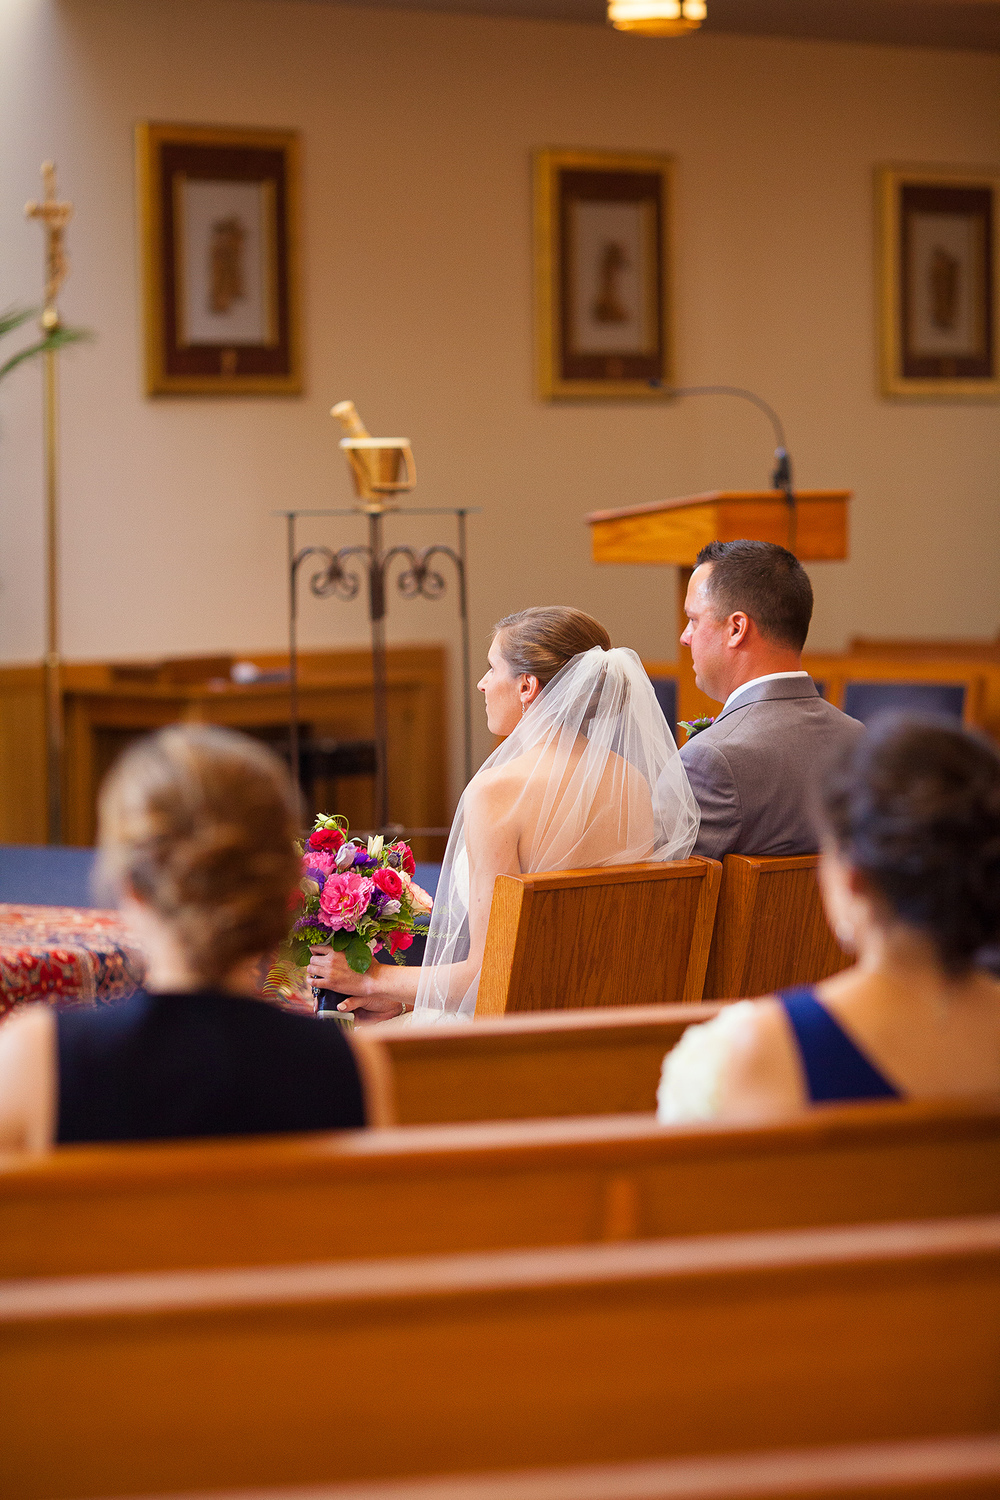 Catholic Wedding at Our Lady of Lourdes